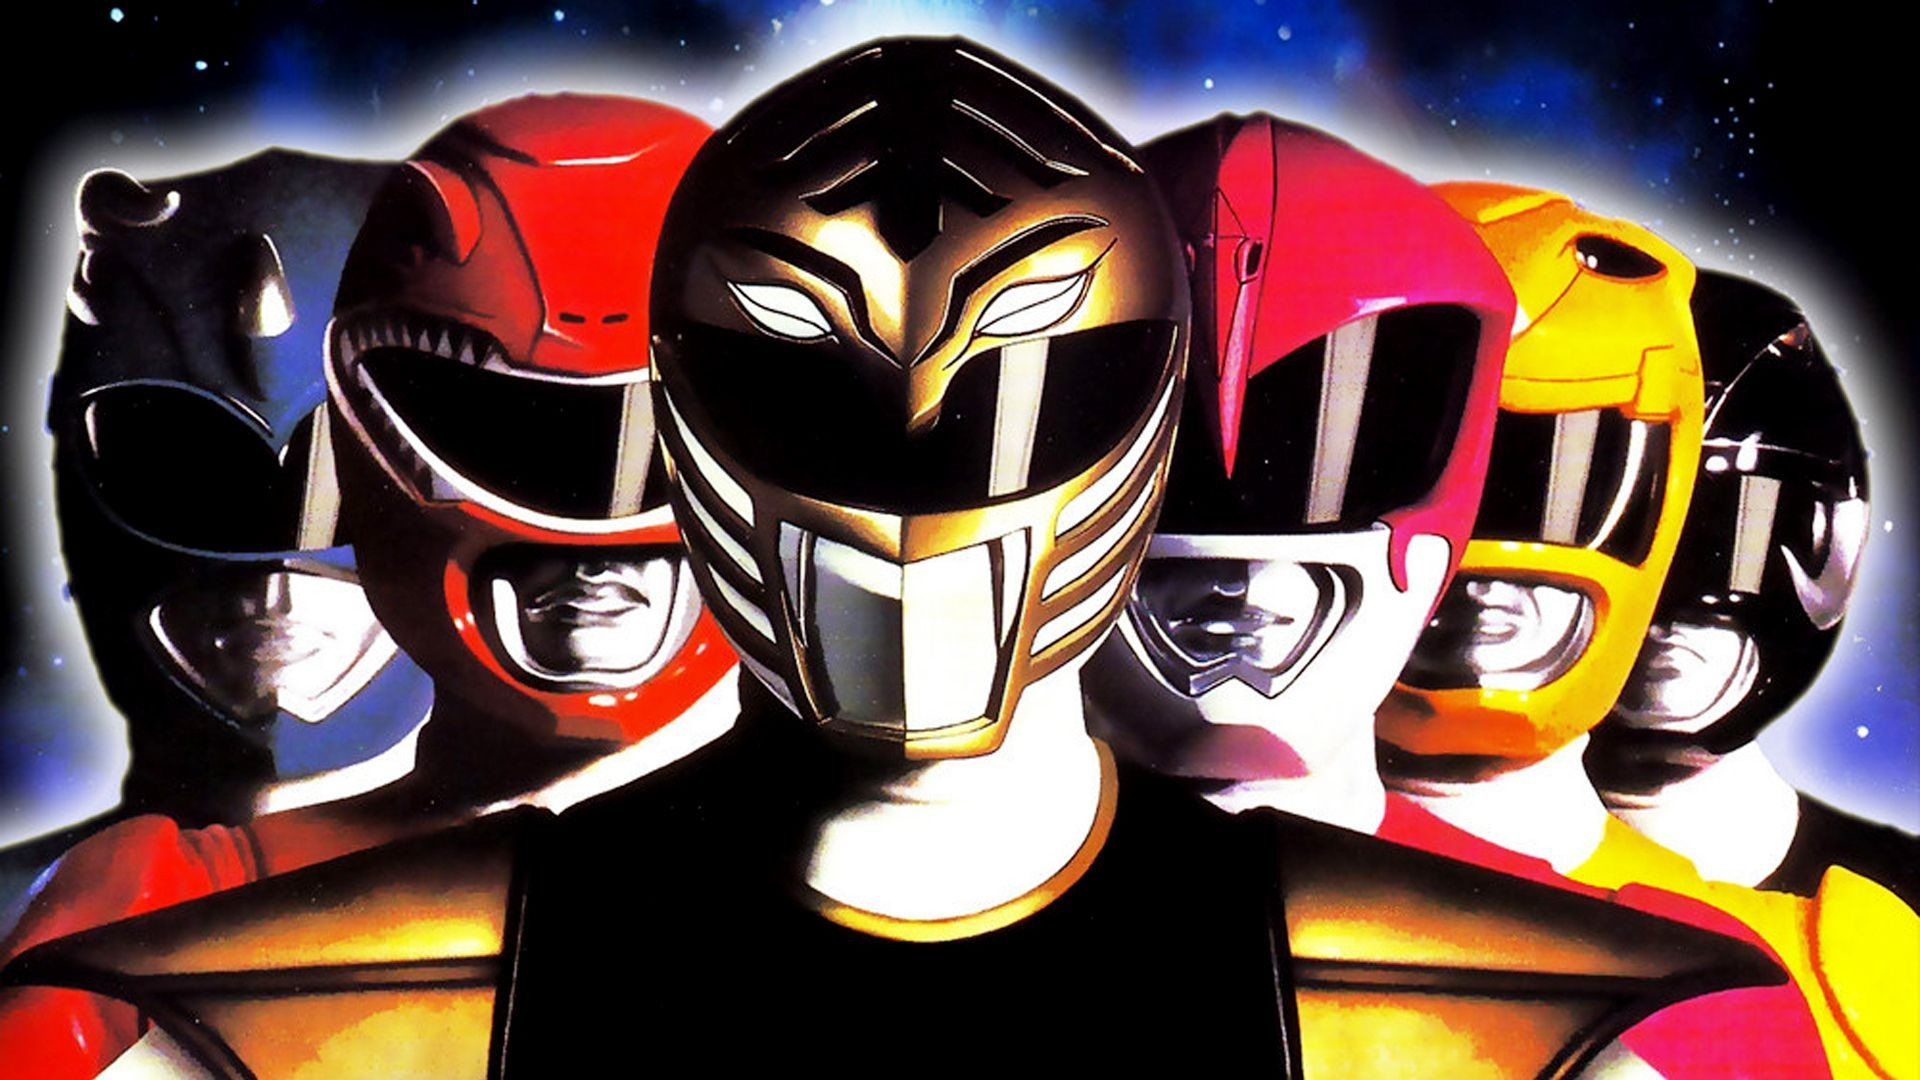 Res: 1920x1080, Power Rangers Wallpapers Photos (71 Wallpapers) – HD Wallpapers